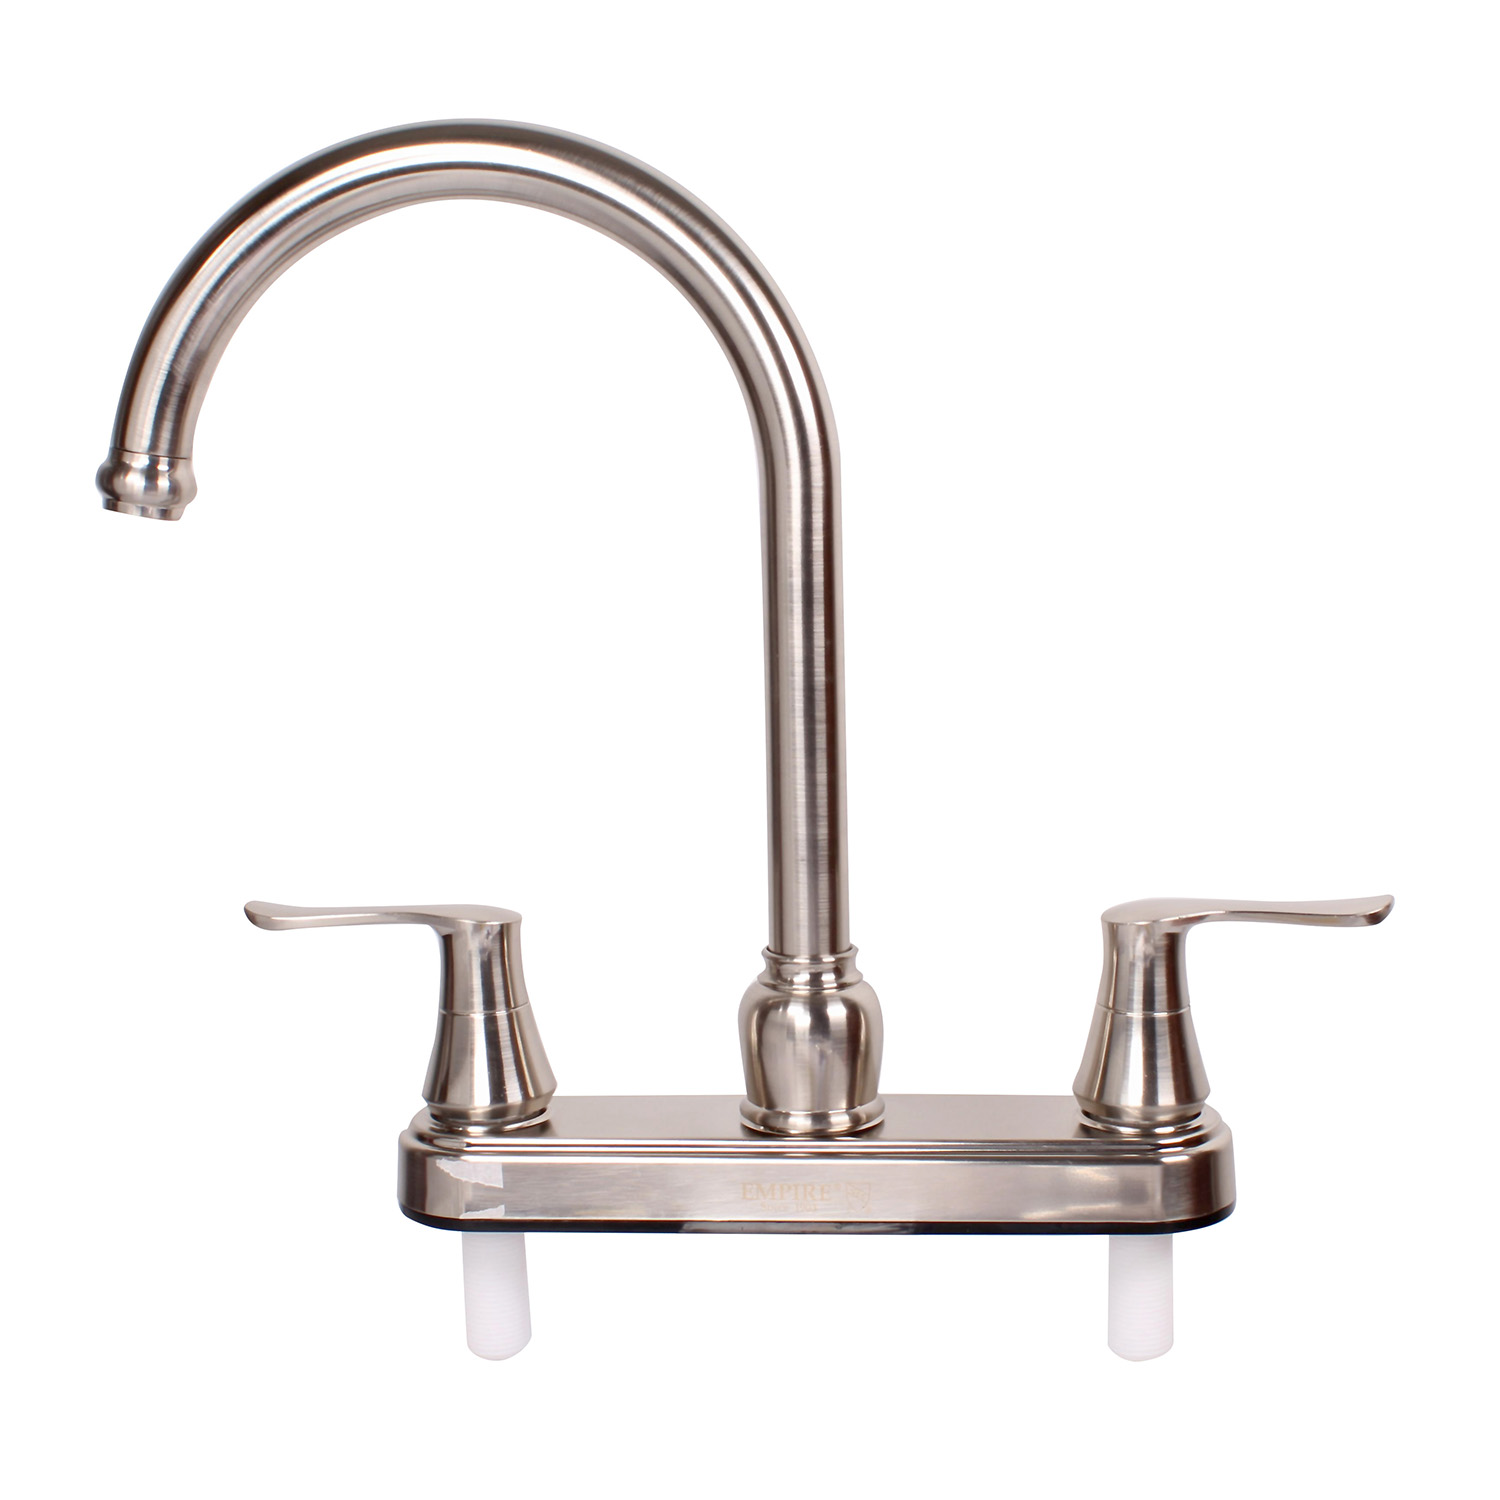 Empire Faucets 8 Rv Kitchen Faucet Head Replacement Brushed Nickel Handles Walmart Com Walmart Com